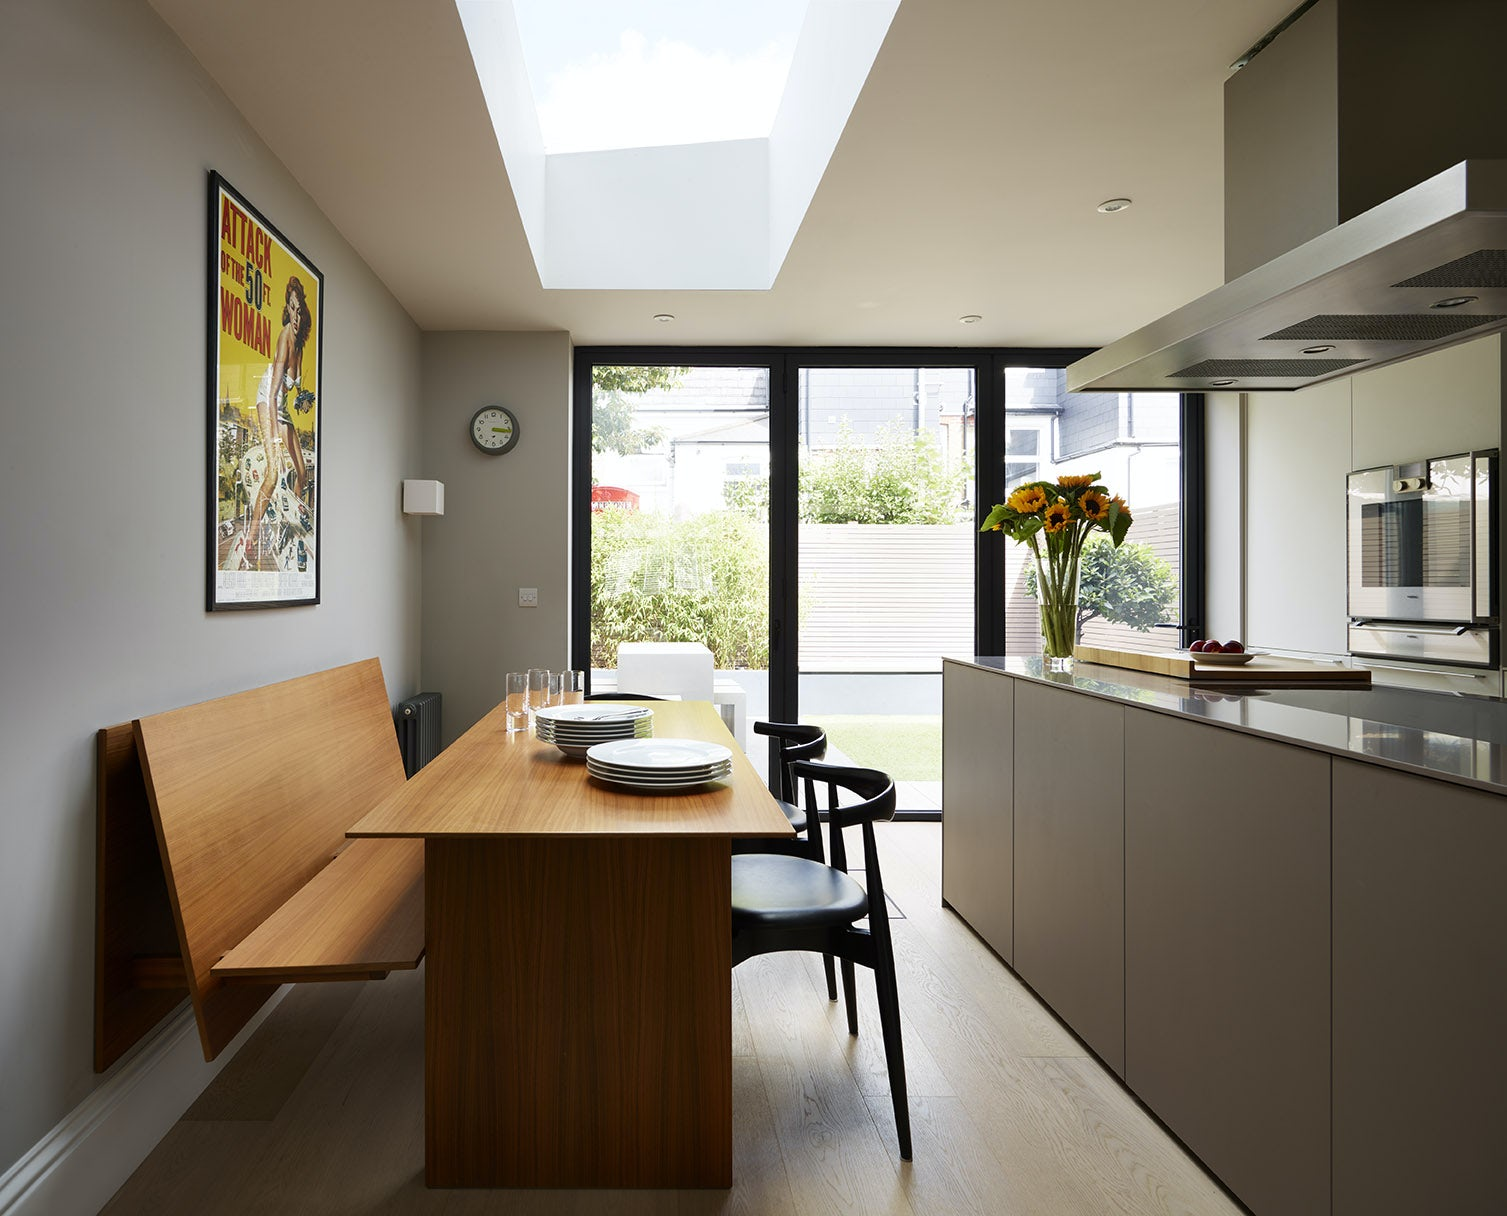 Bulthaup B3 perfectly formed kitchen architecture s bulthaup b3 on architizer